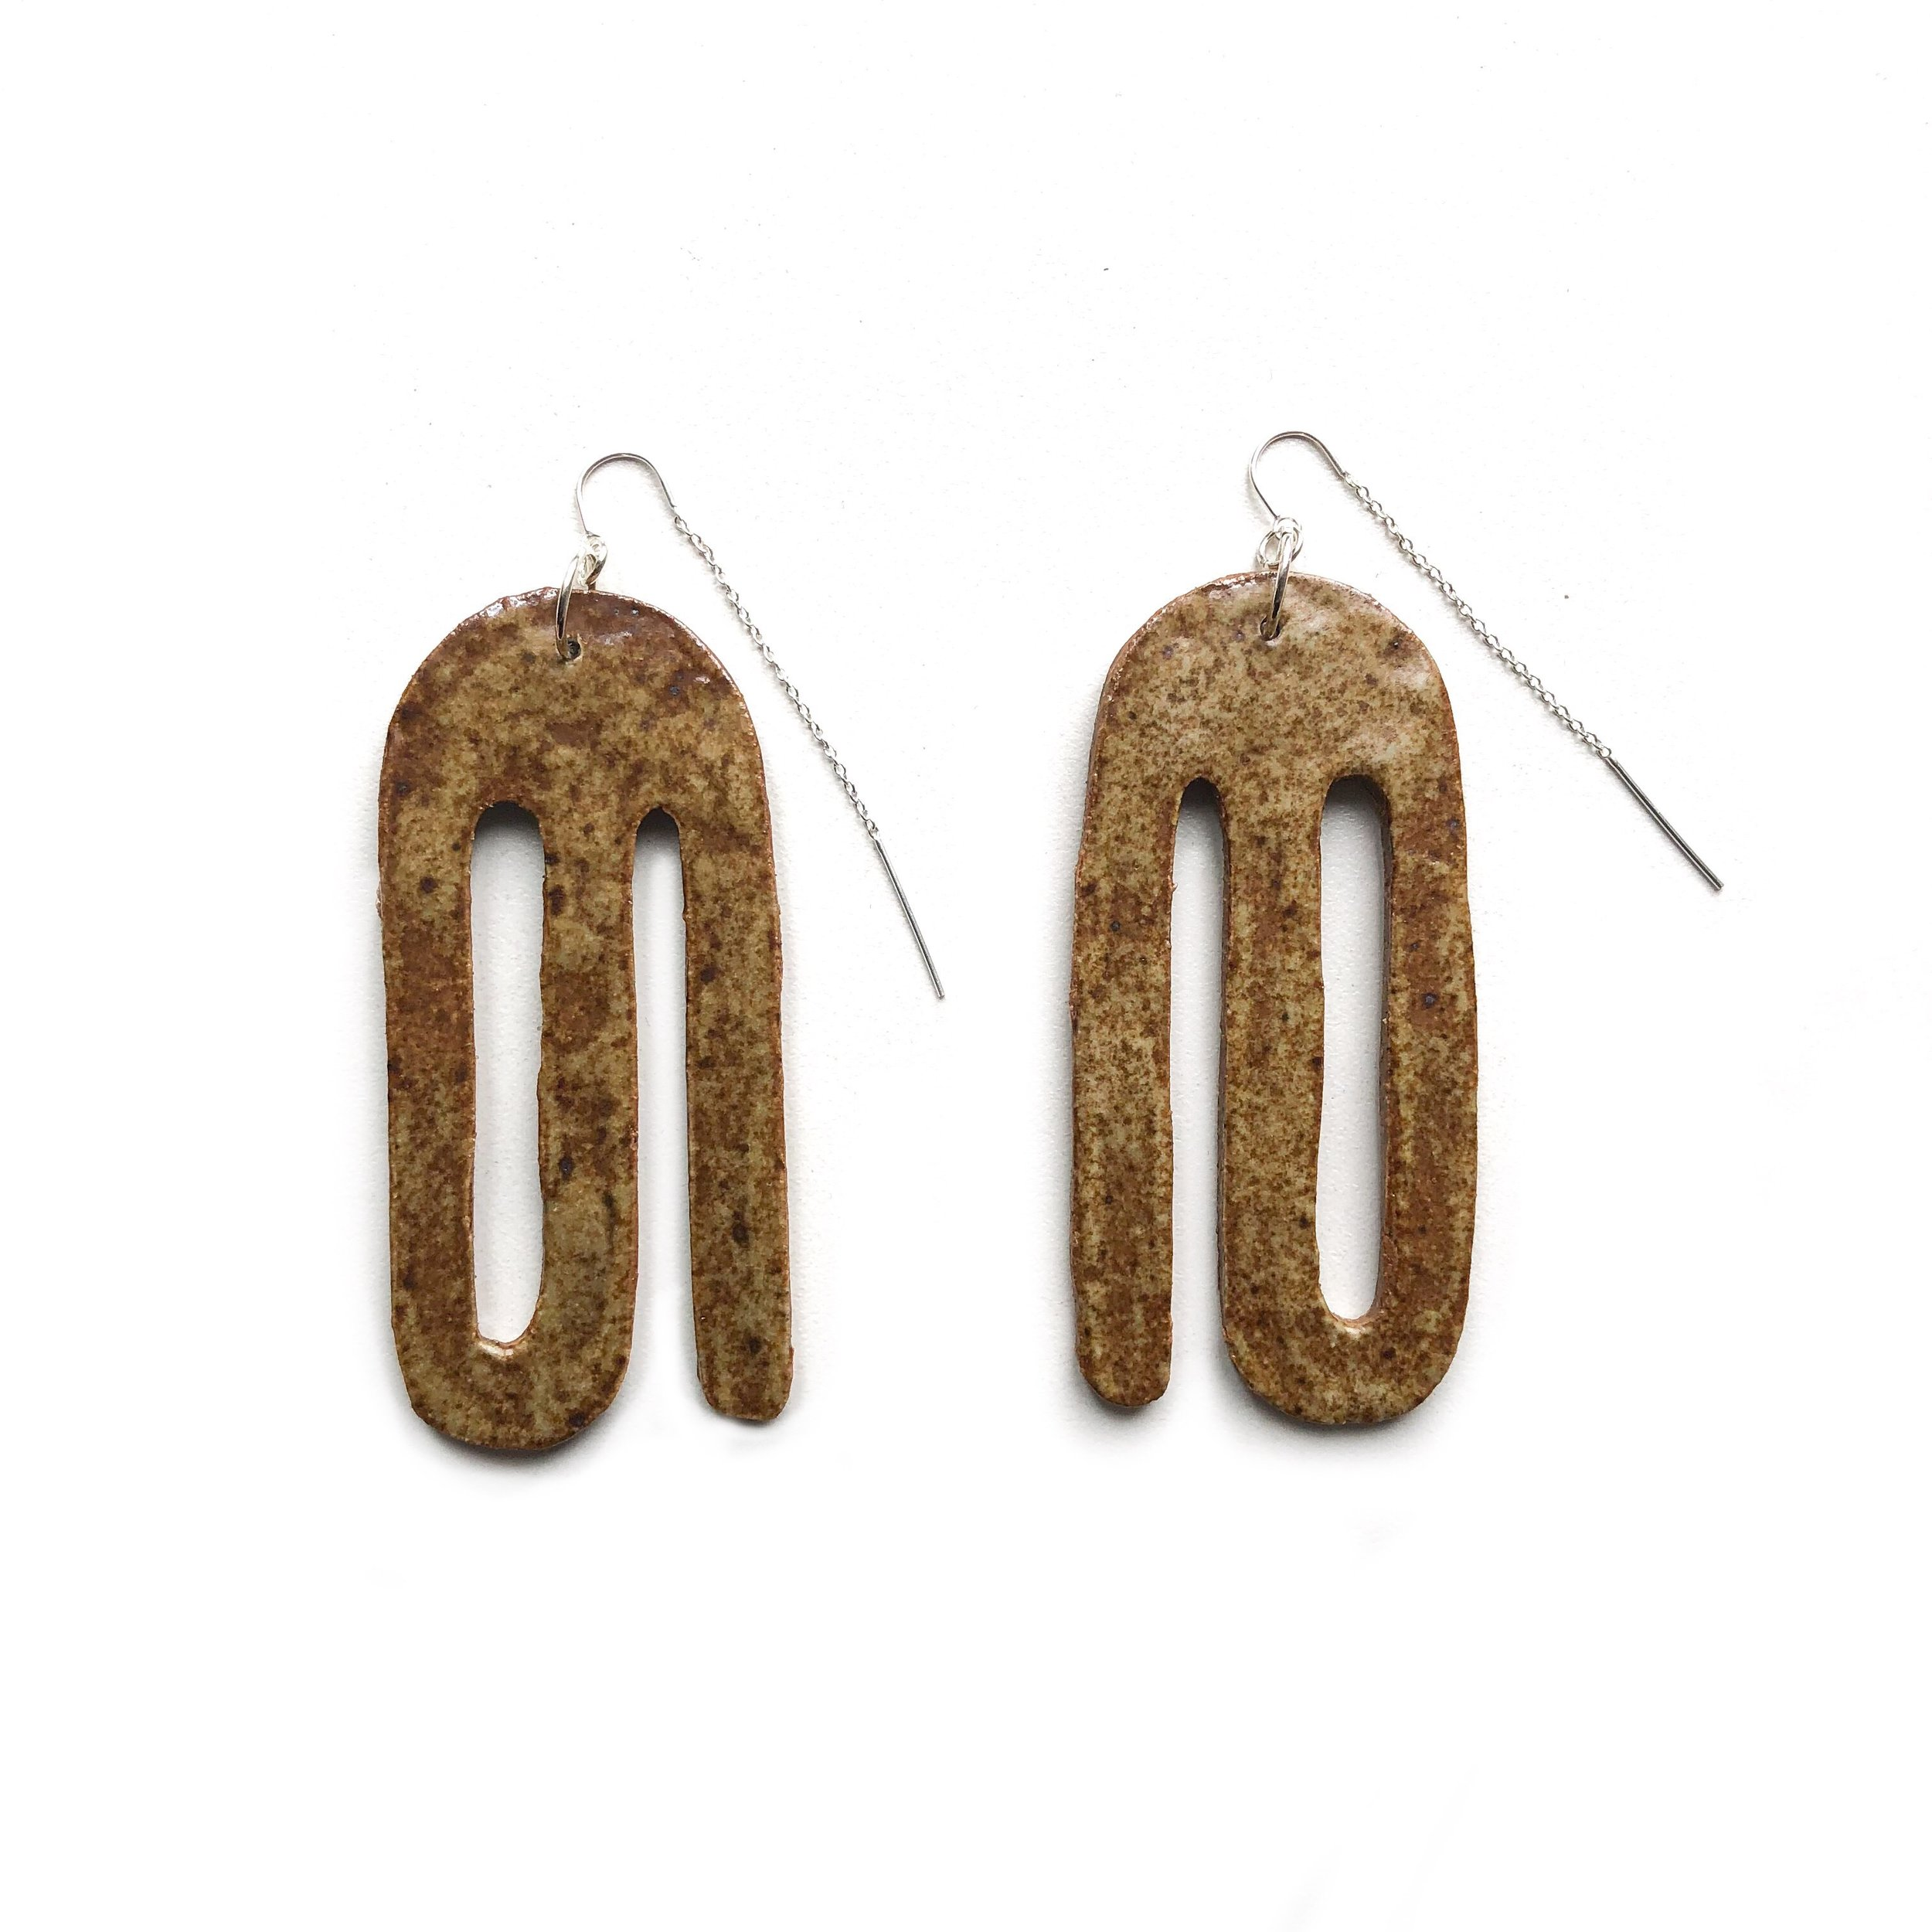 kushins_stoneware_earrings12.JPG